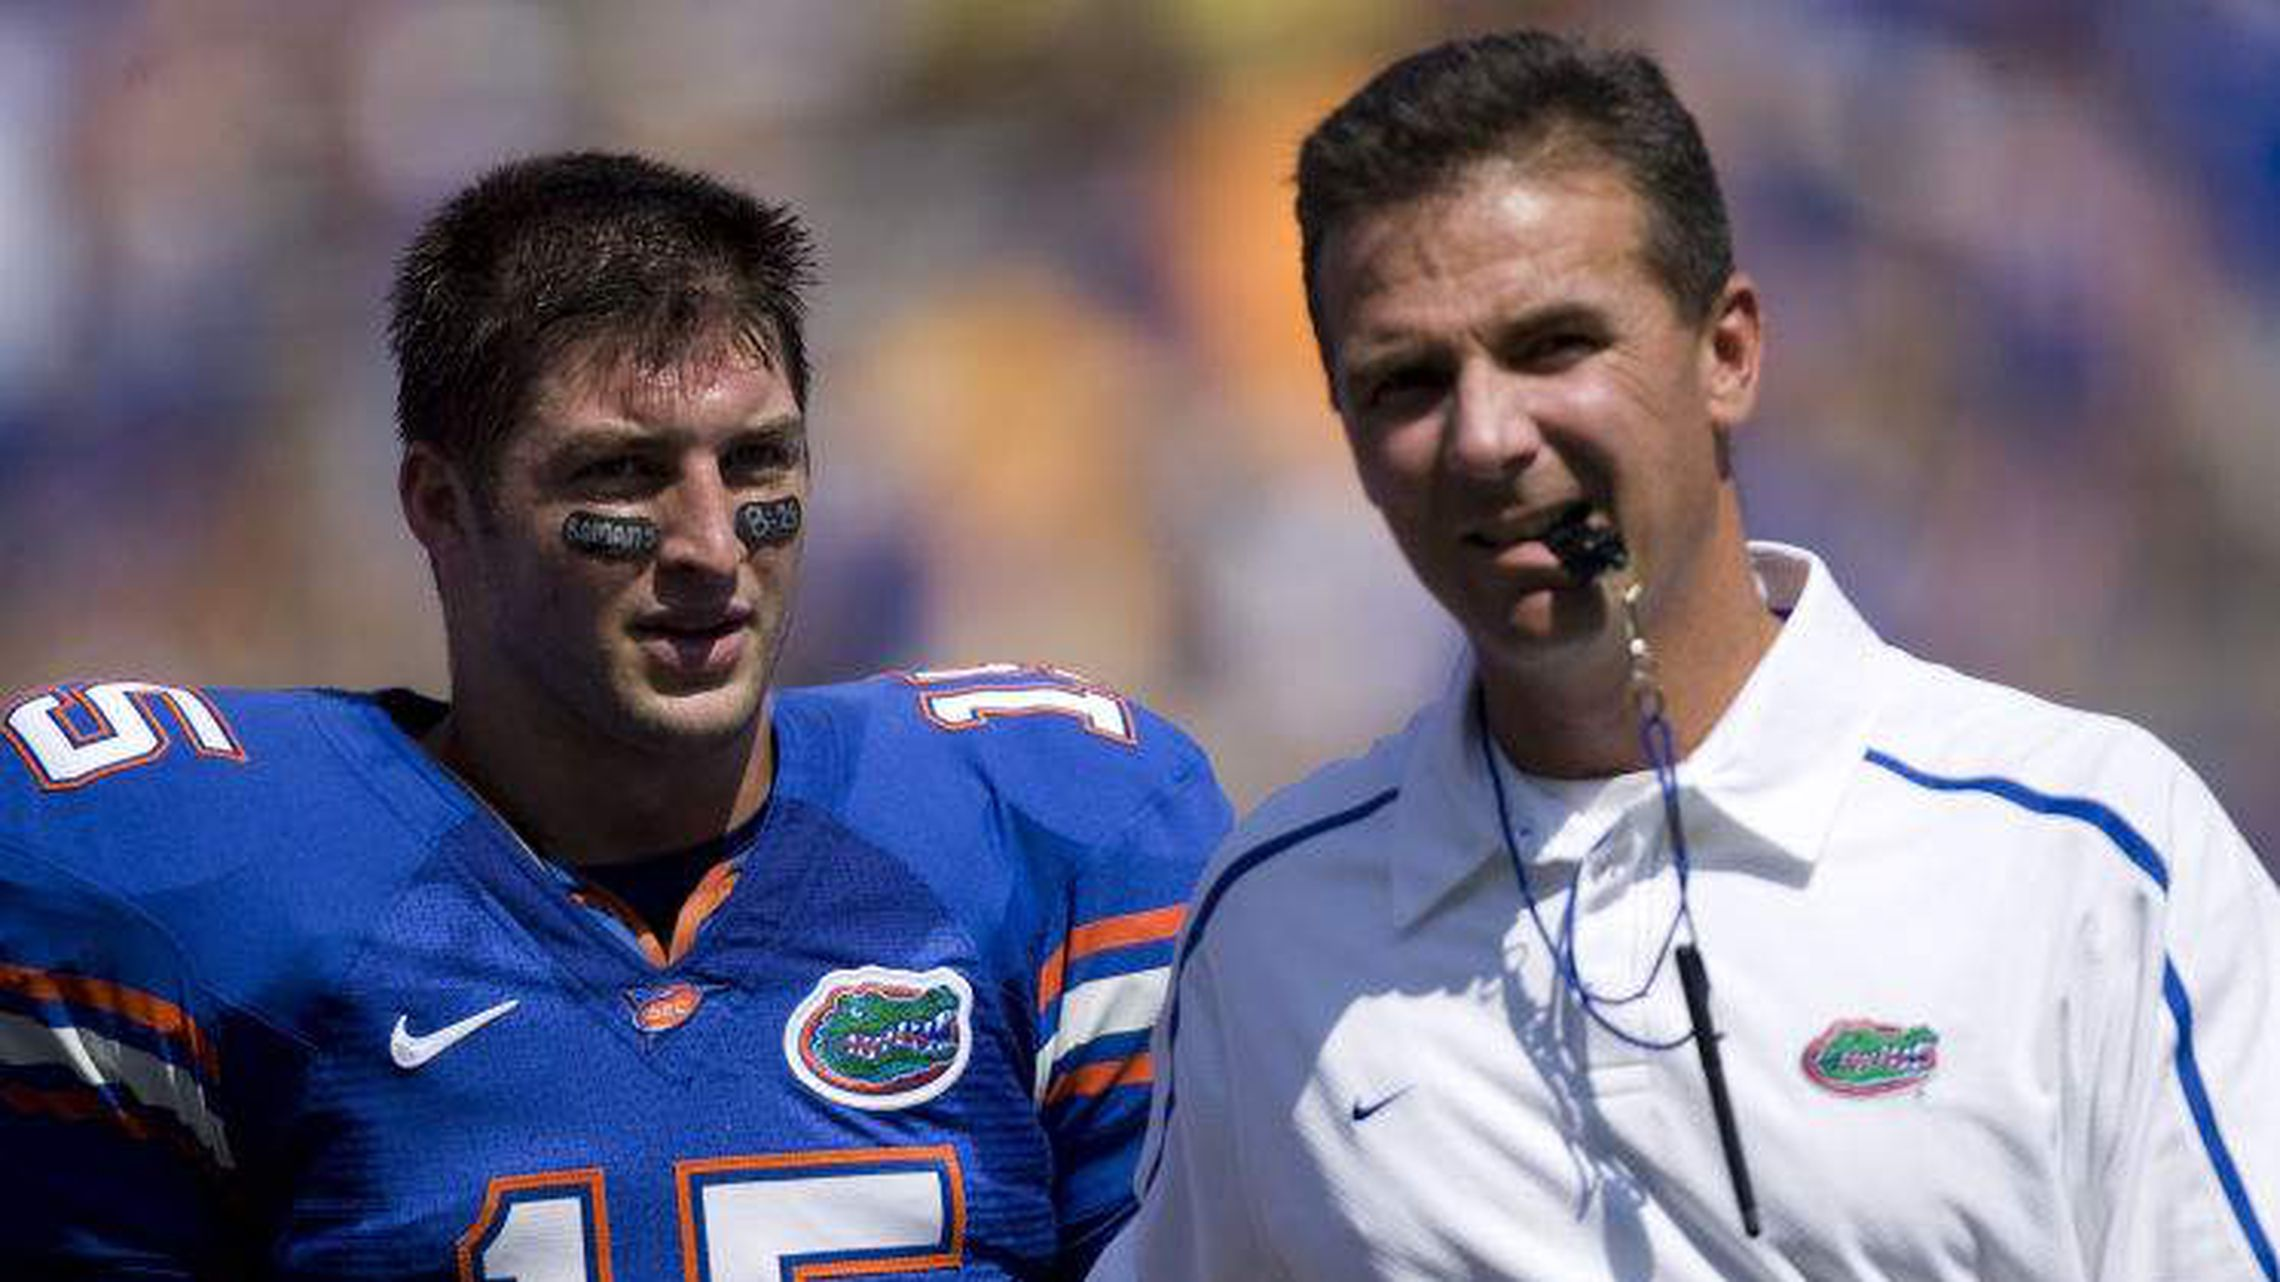 will Tim Tebow coach with Urban Meyer?